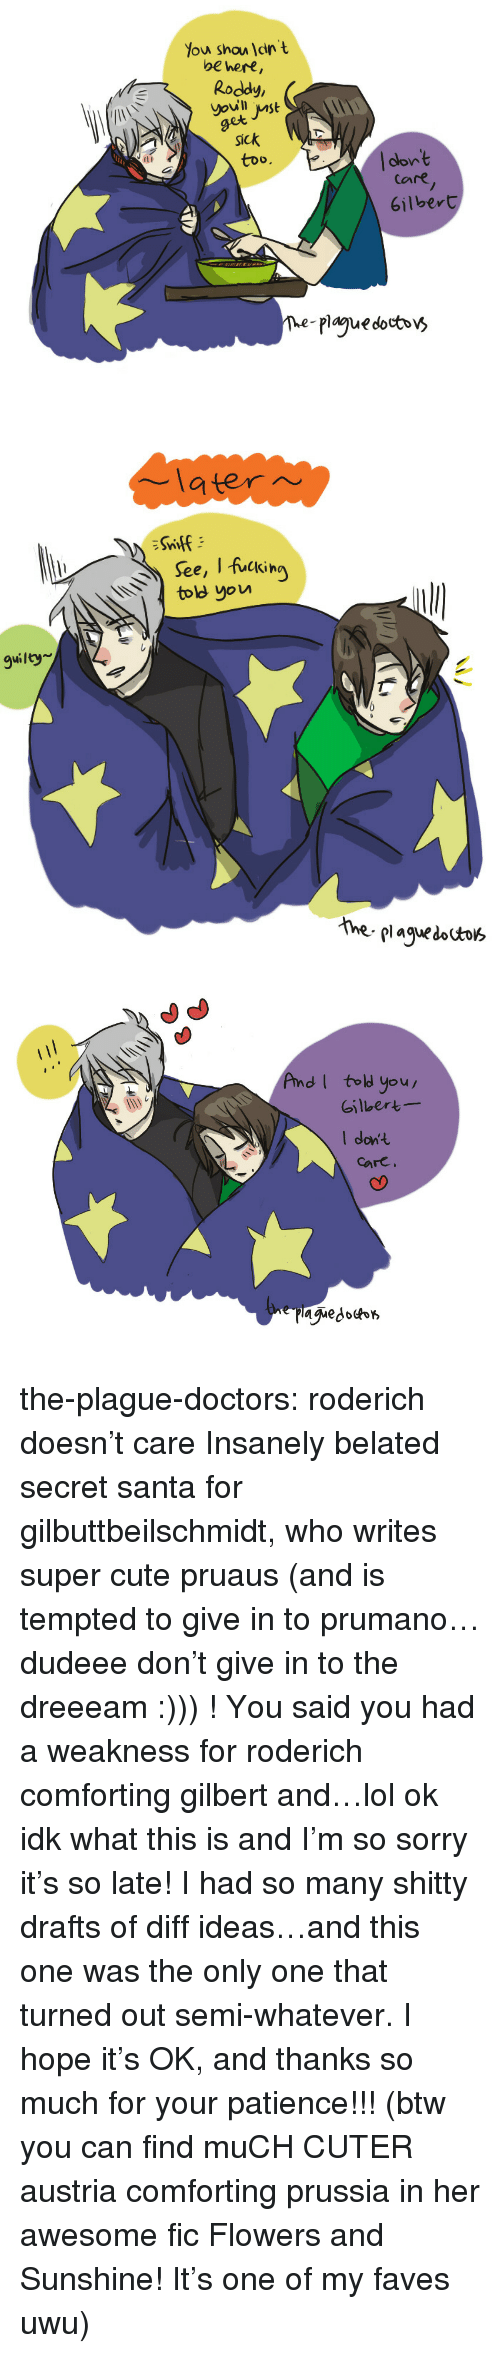 secret santa: Y  ou shou dn  t  be hert,  Roddy  et  Sick  too.  clon't  Care  6ilbert  The-plague docbbv>   latern  See, I fuckin  ov  guilty  hhe plaguesa   AndI tol you  Gilbert  I dont  care the-plague-doctors:  roderich doesn't care  Insanely belated secret santa for gilbuttbeilschmidt, who writes super cute pruaus (and is tempted to give in to prumano…dudeee don't give in to the dreeeam :))) ! You said you had a weakness for roderich comforting gilbert and…lol ok idk what this is and I'm so sorry it's so late! I had so many shitty drafts of diff ideas…and this one was the only one that turned out semi-whatever. I hope it's OK, and thanks so much for your patience!!! (btw you can find muCH CUTER austria comforting prussia in her awesome fic Flowers and Sunshine! It's one of my faves uwu)